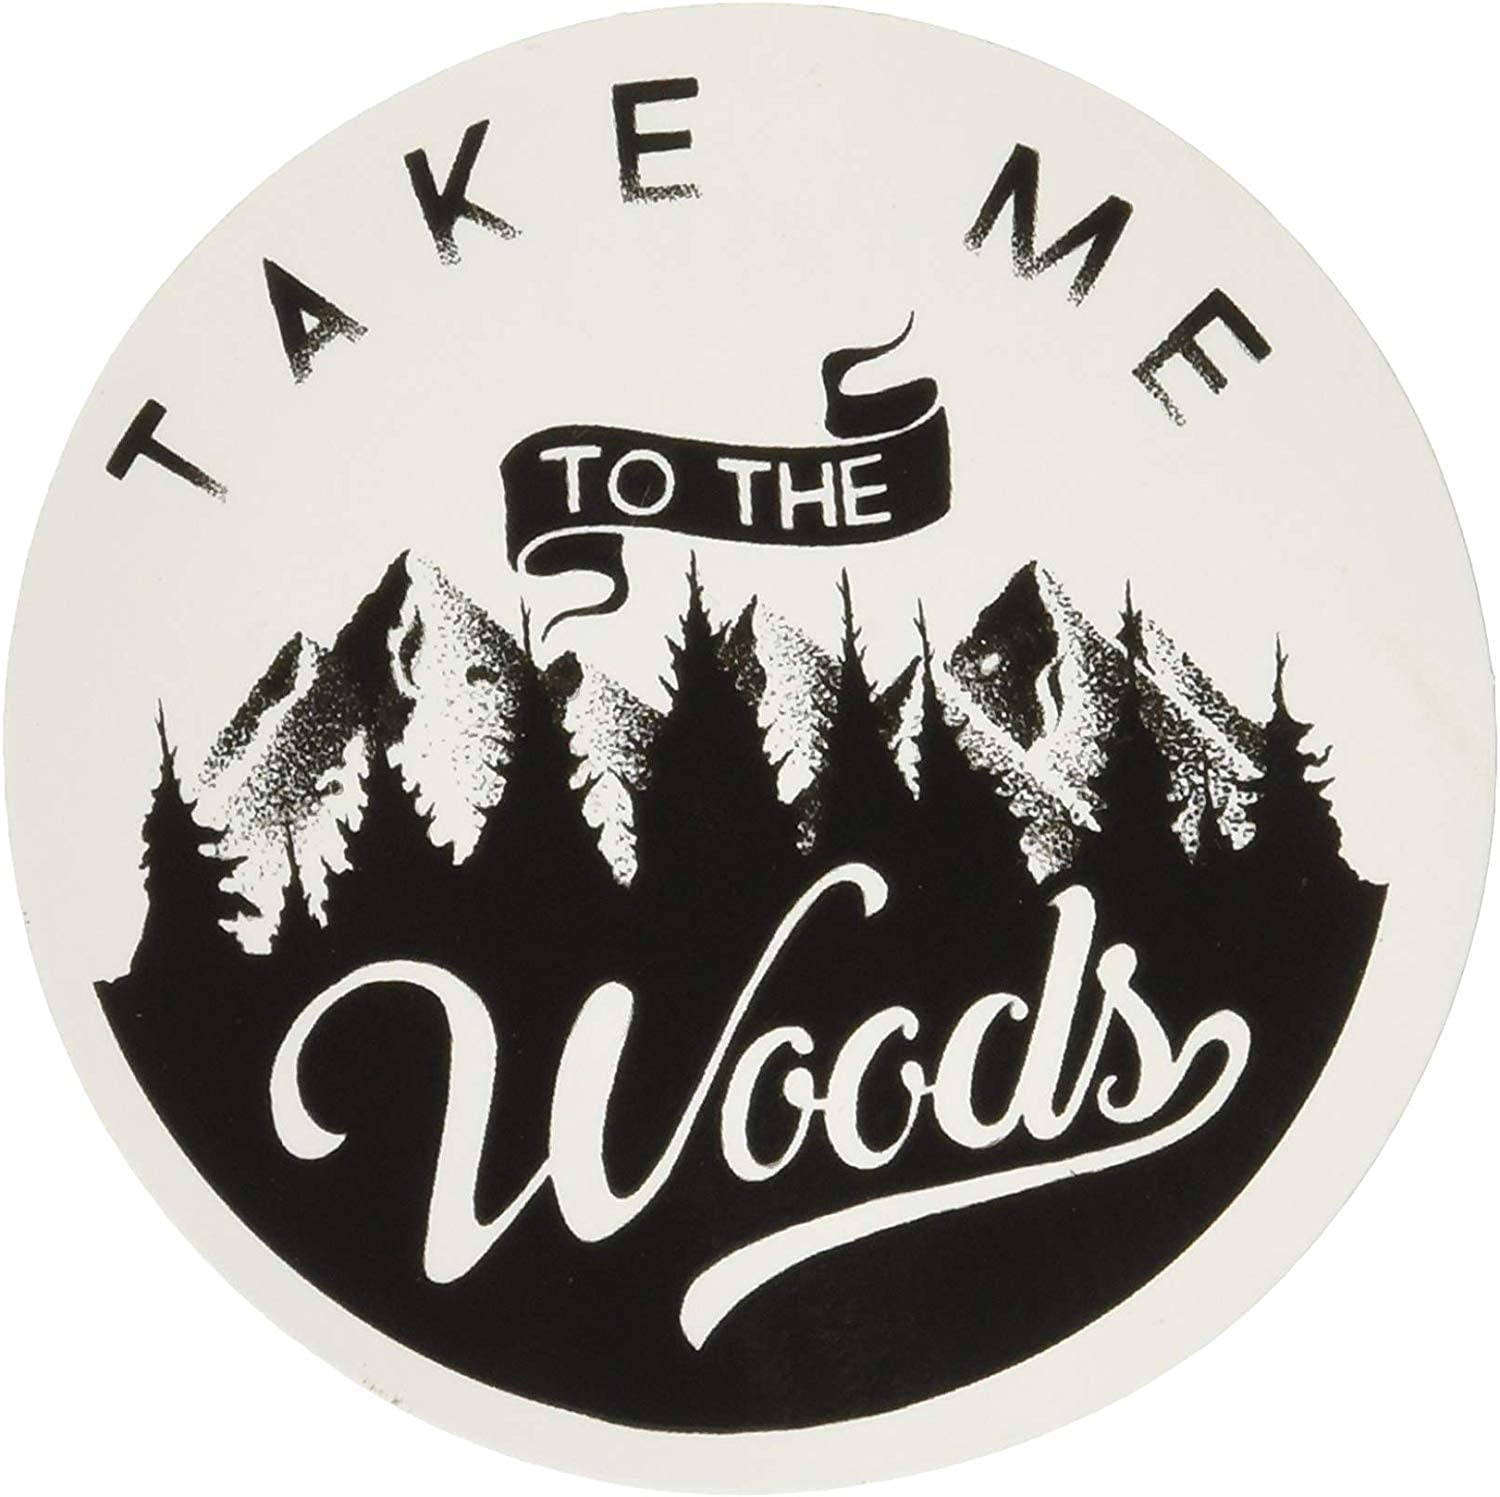 Sticker Art Aesthetic Vinyl Stickers | Outdoor Wilderness Camping Travel Hiking Nature Colorado Snow Mountain Woods Moon| Large Waterproof Decal for HydroFlask Water Bottle Laptop Car Bumper